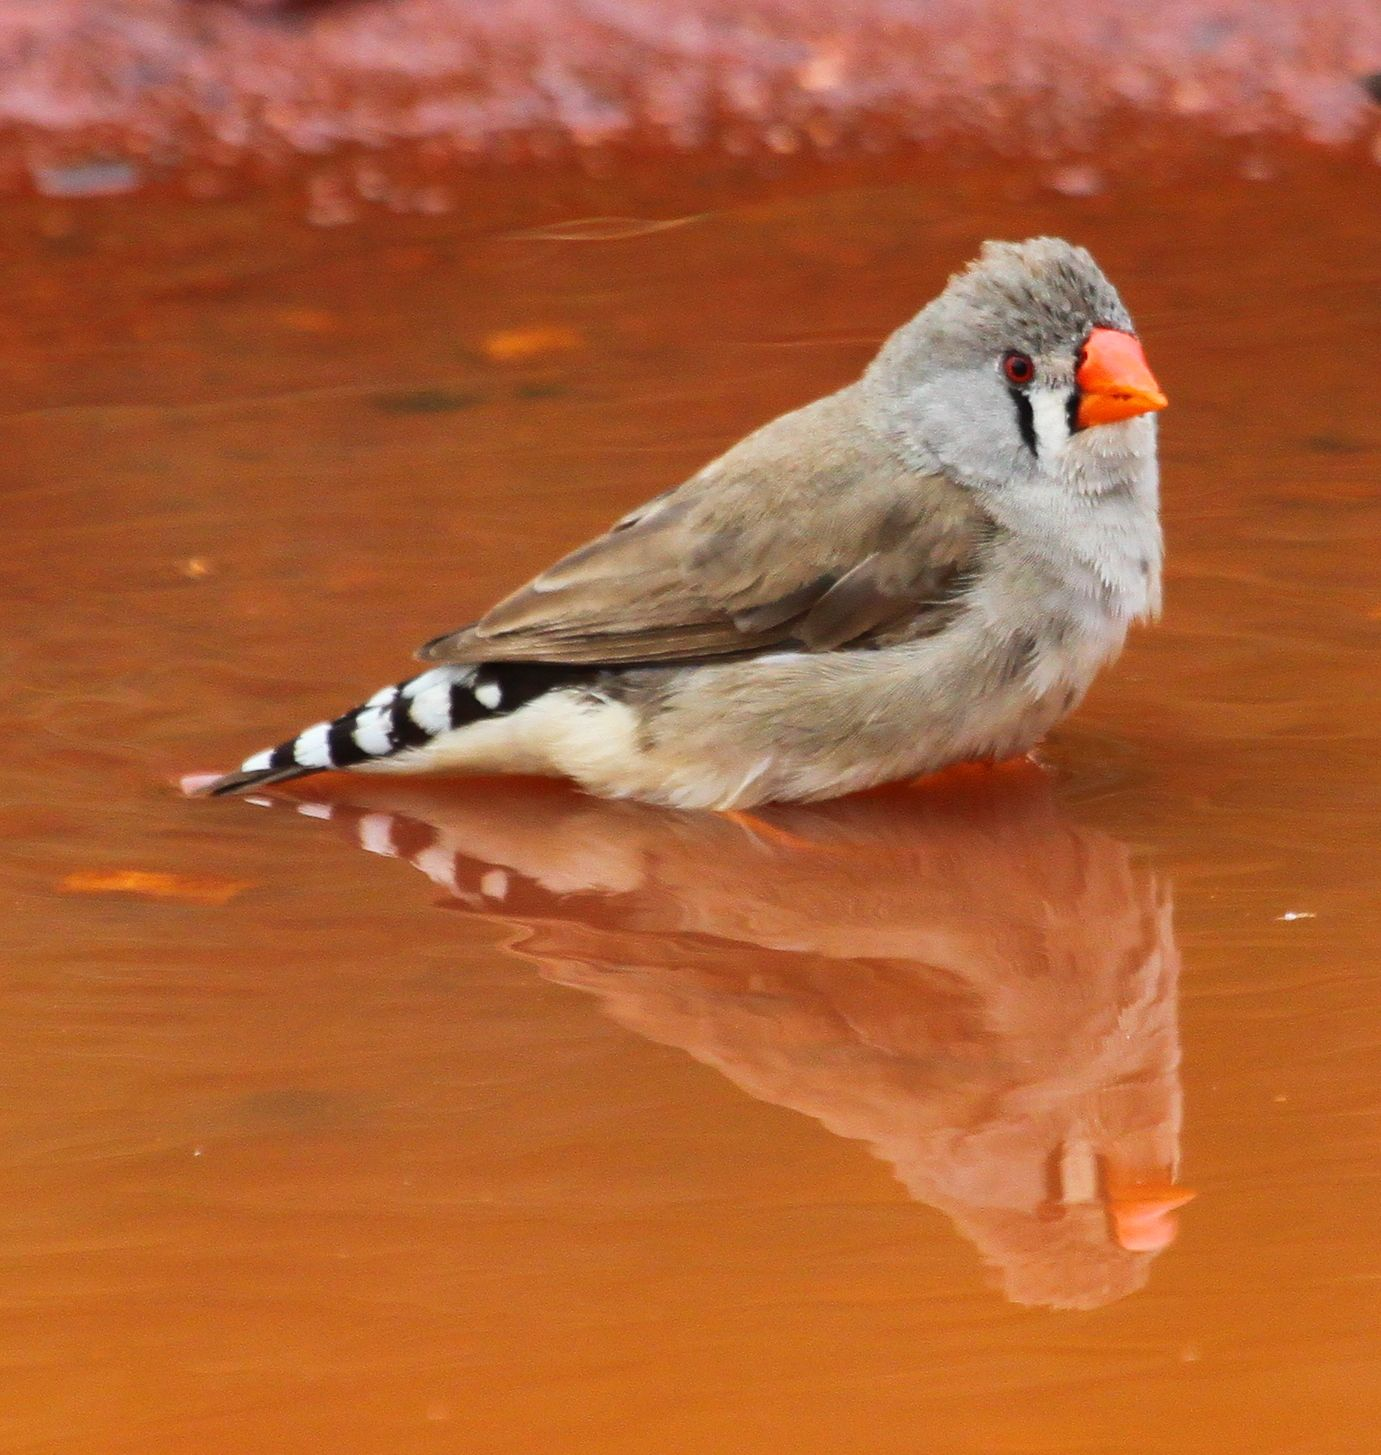 ... Birds of Australia: Wild Zebra Finch Bath Time - Photos and Video